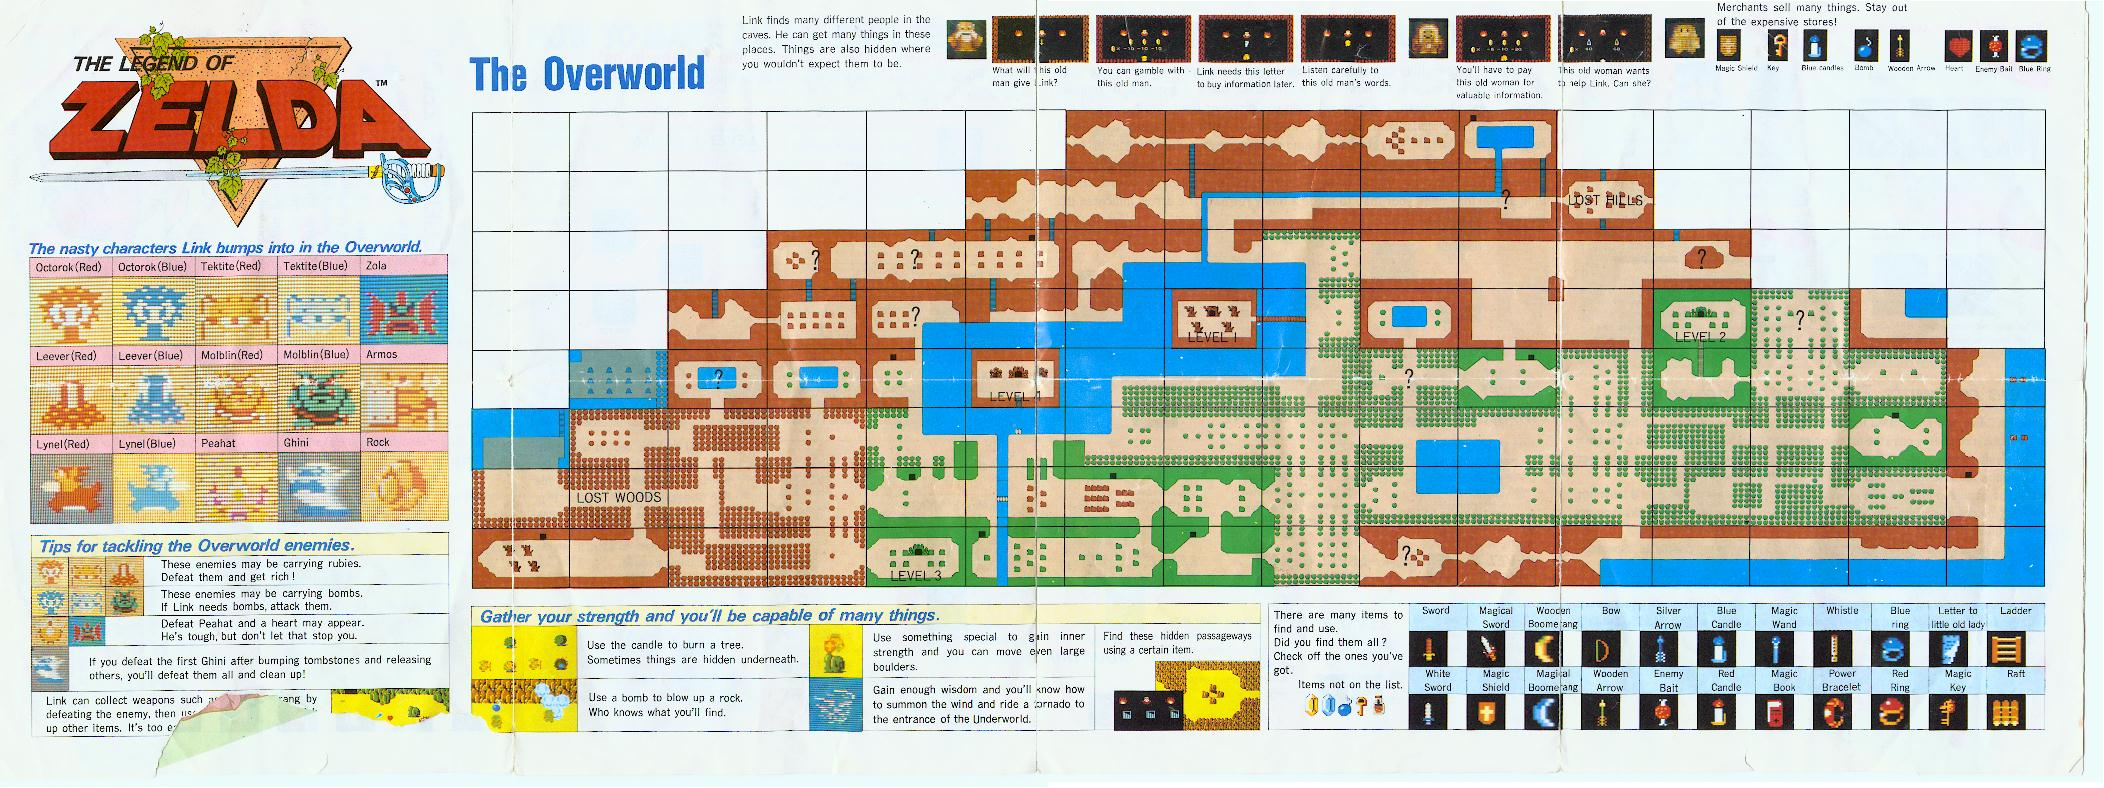 This is an image of Dashing Legend of Zelda Nes Map Labeled